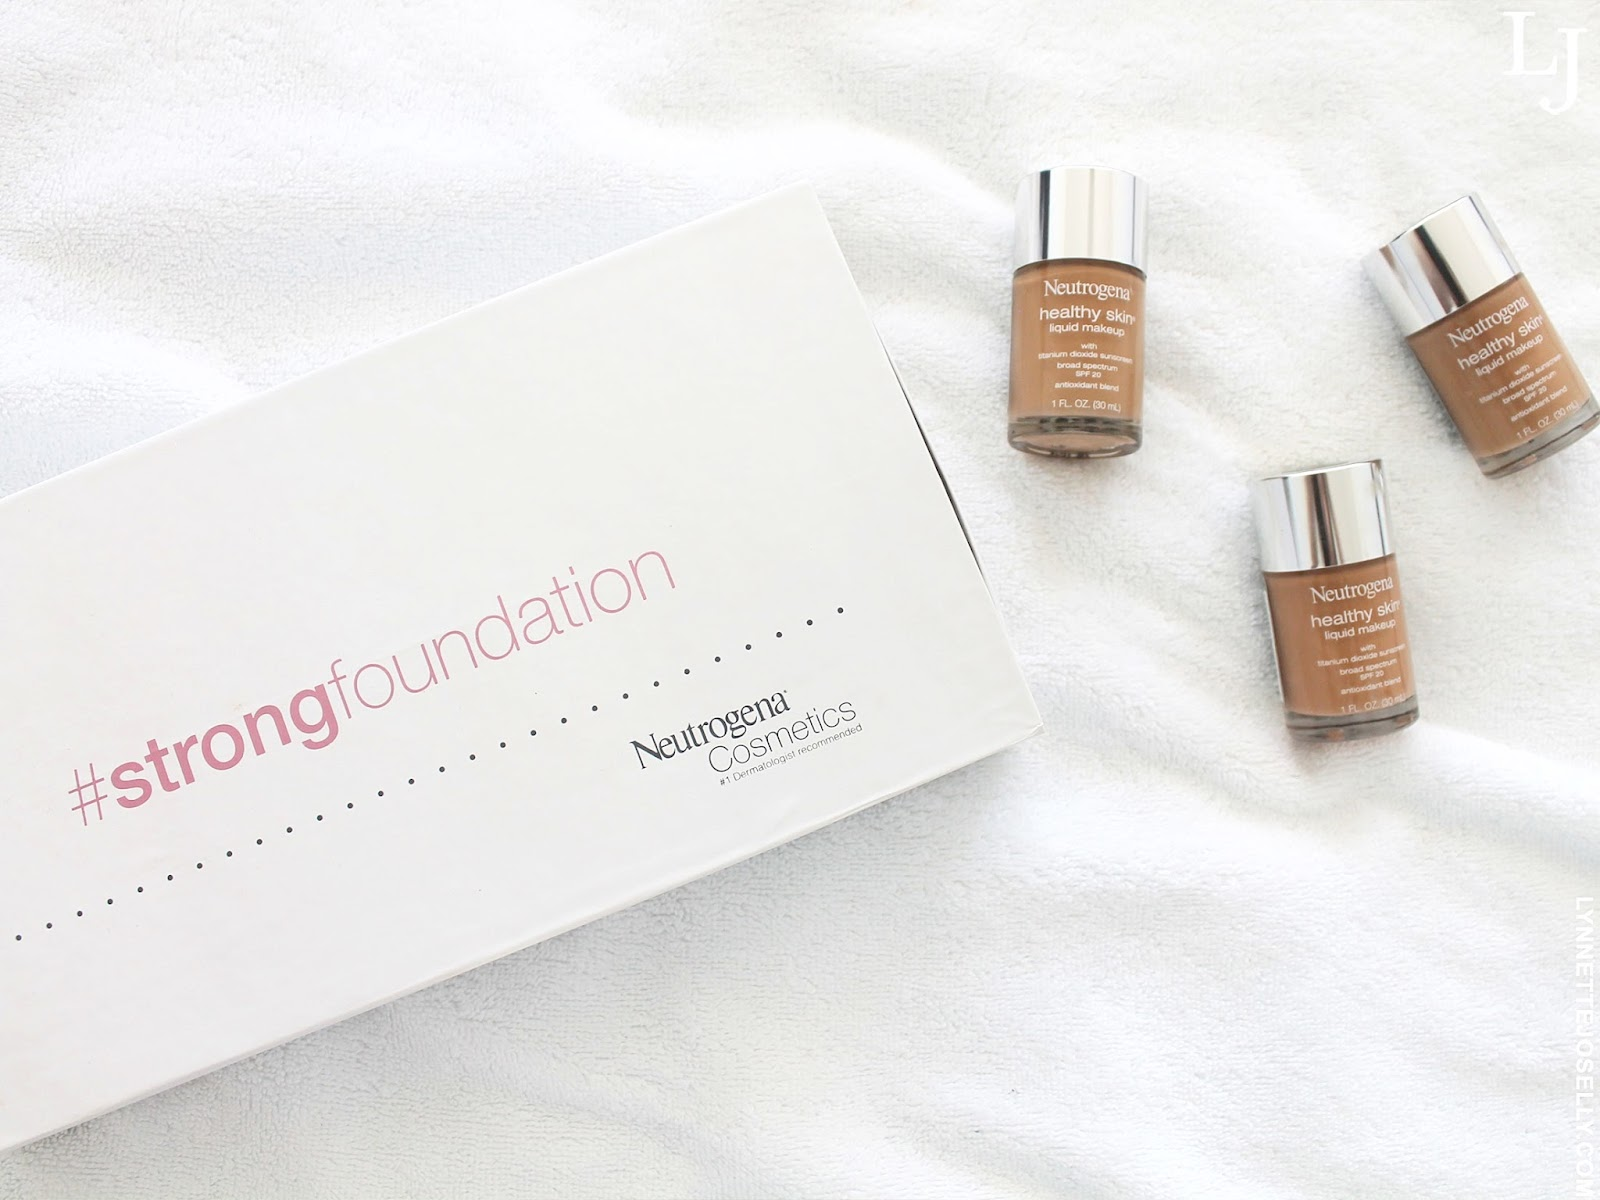 neutrogena-strongfoundation